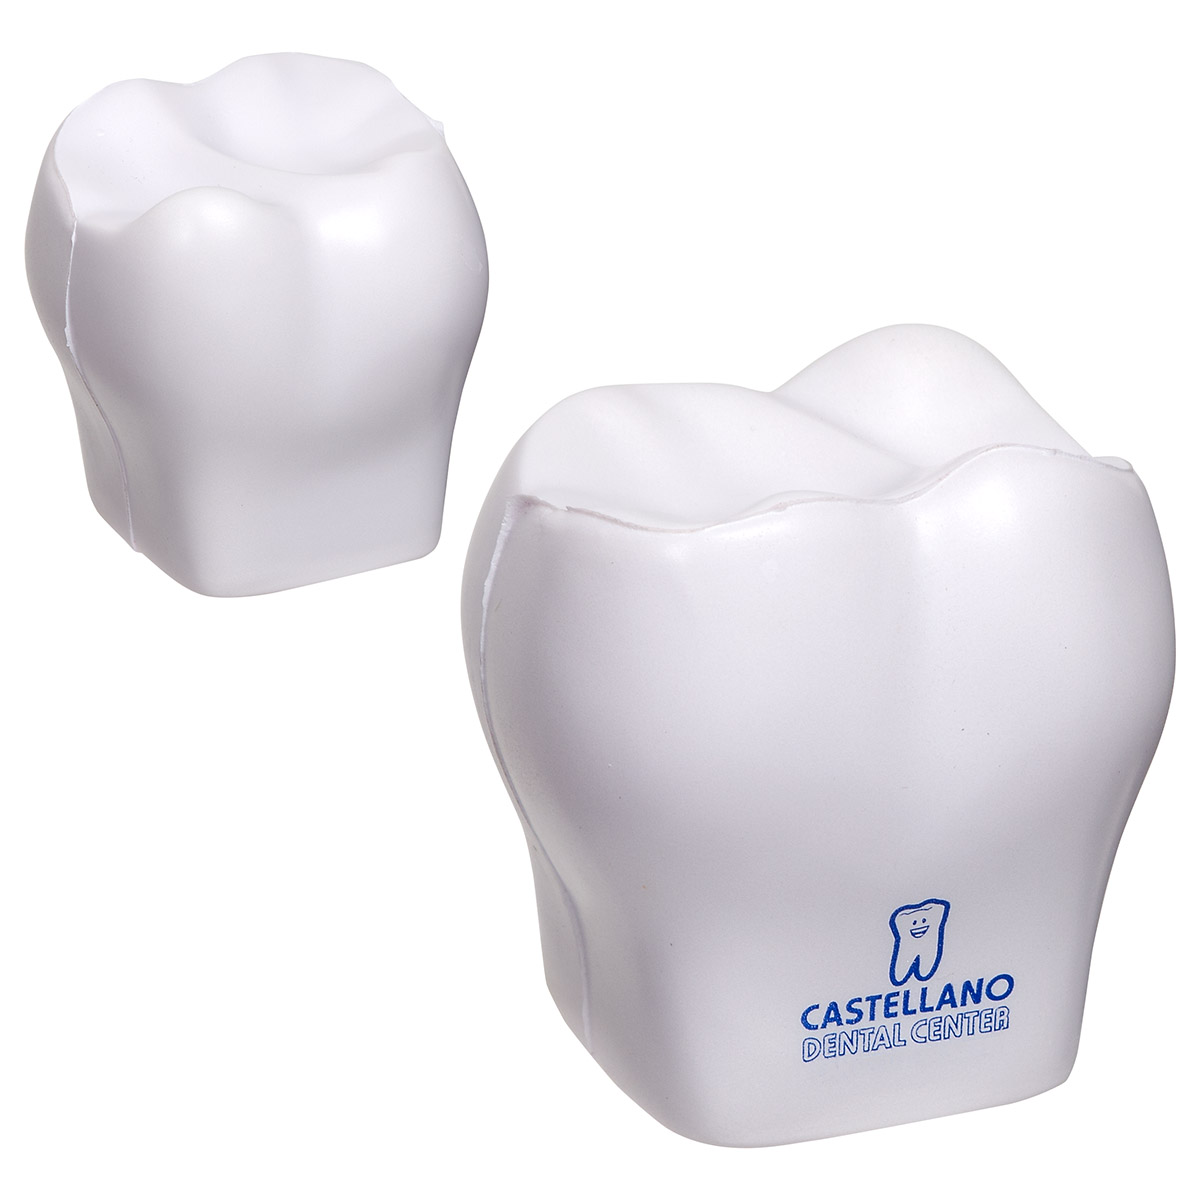 Tooth Stress Reliever, LAN-TT17 - 1 Colour Imprint